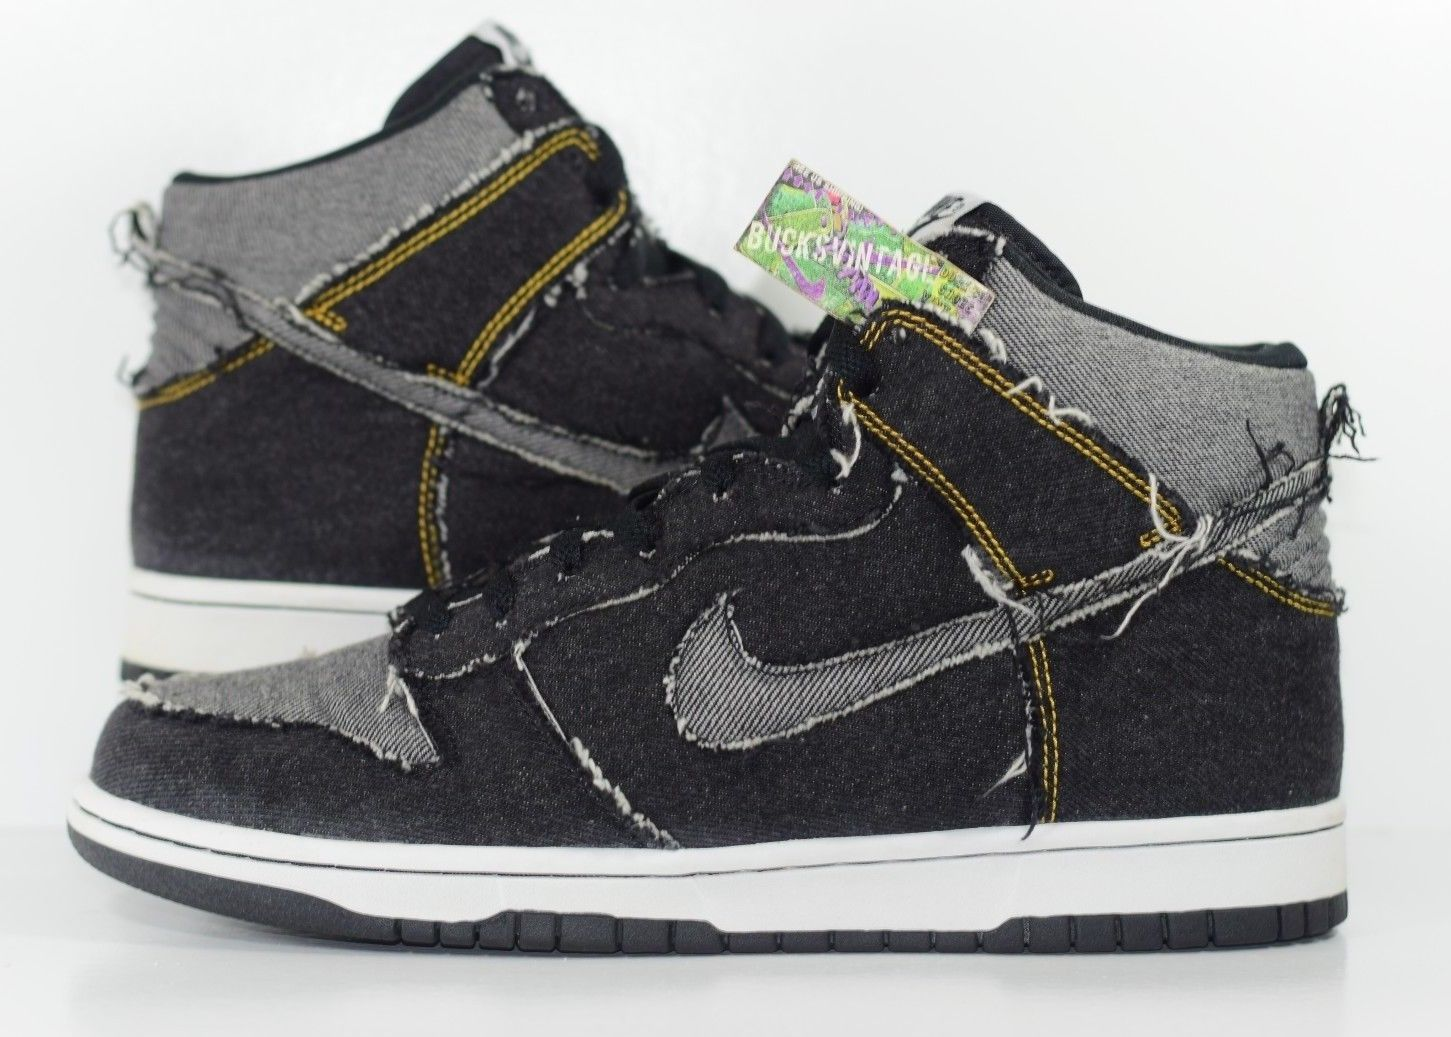 new arrivals c7d6b 81258 Size 10  2006 Nike Dunk Denim High Reese 312423-001